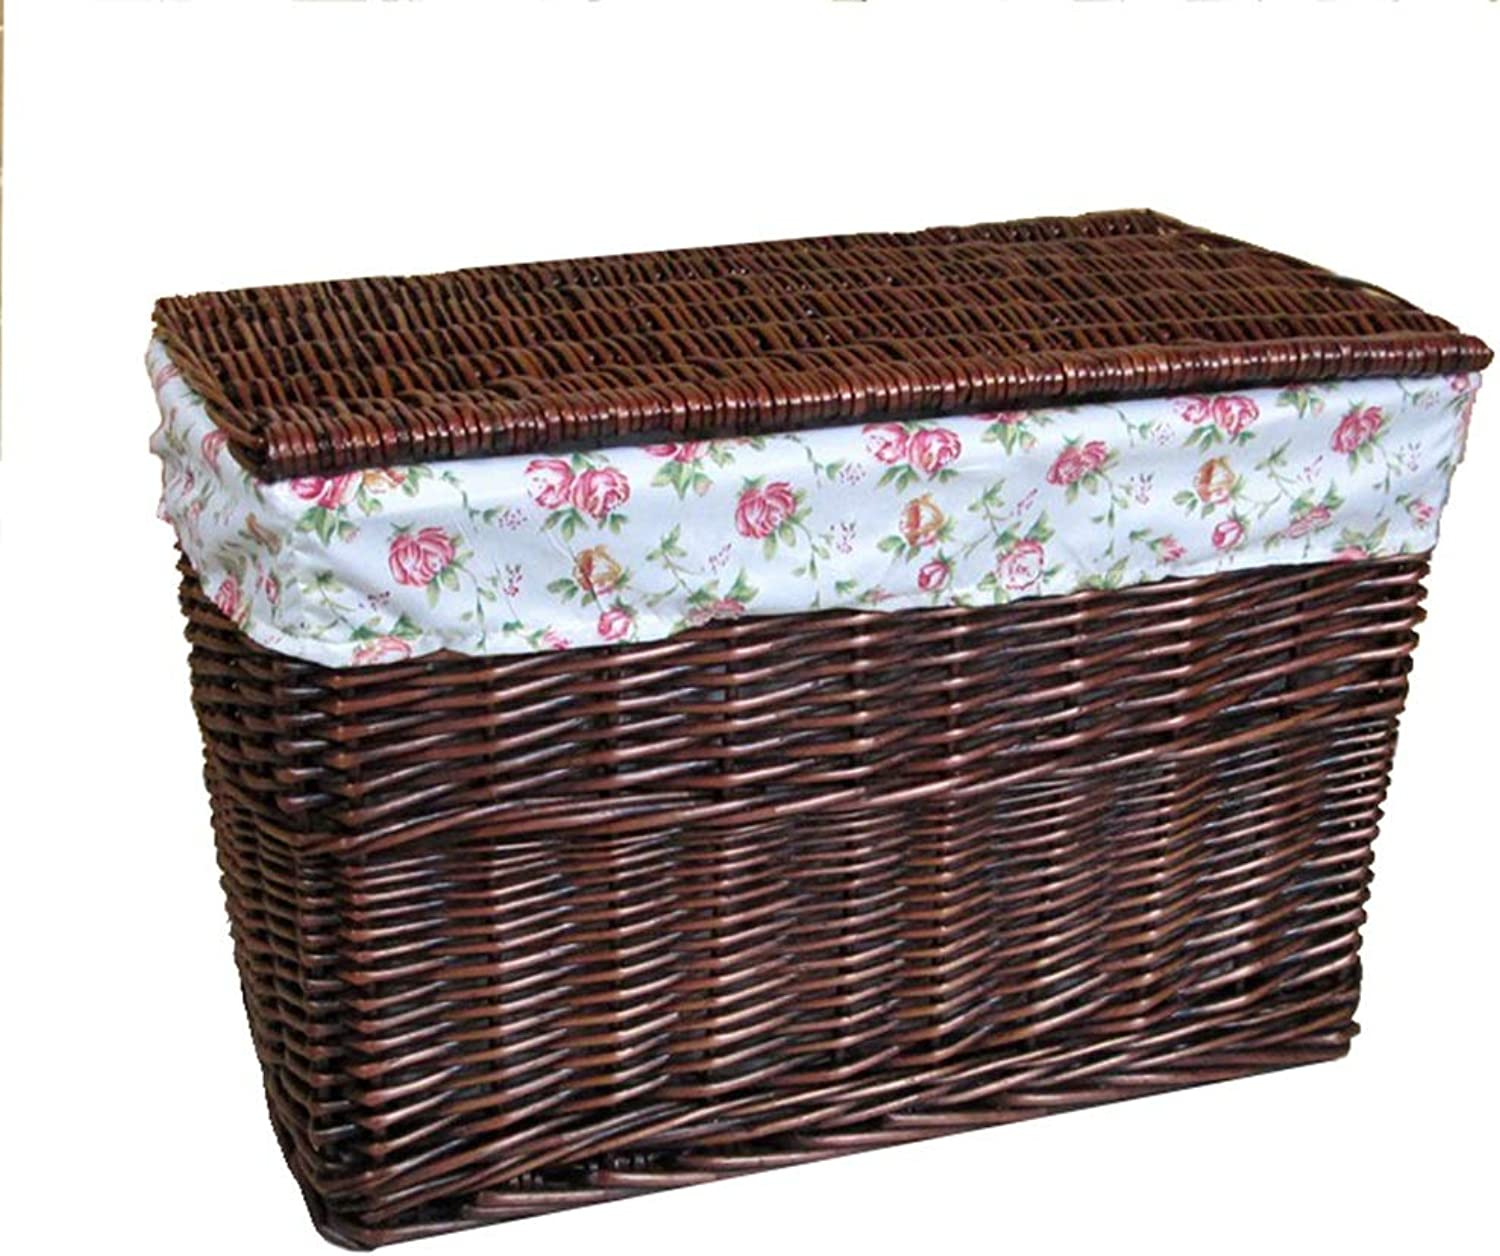 Laundry Hamper Storage Boxes Extra Large with Lid Rattan Storage Basket Clothes Storage Storage Box Rural Wind ZHANGQIANG (color   Brown-Flower, Size   60  40  40cm)